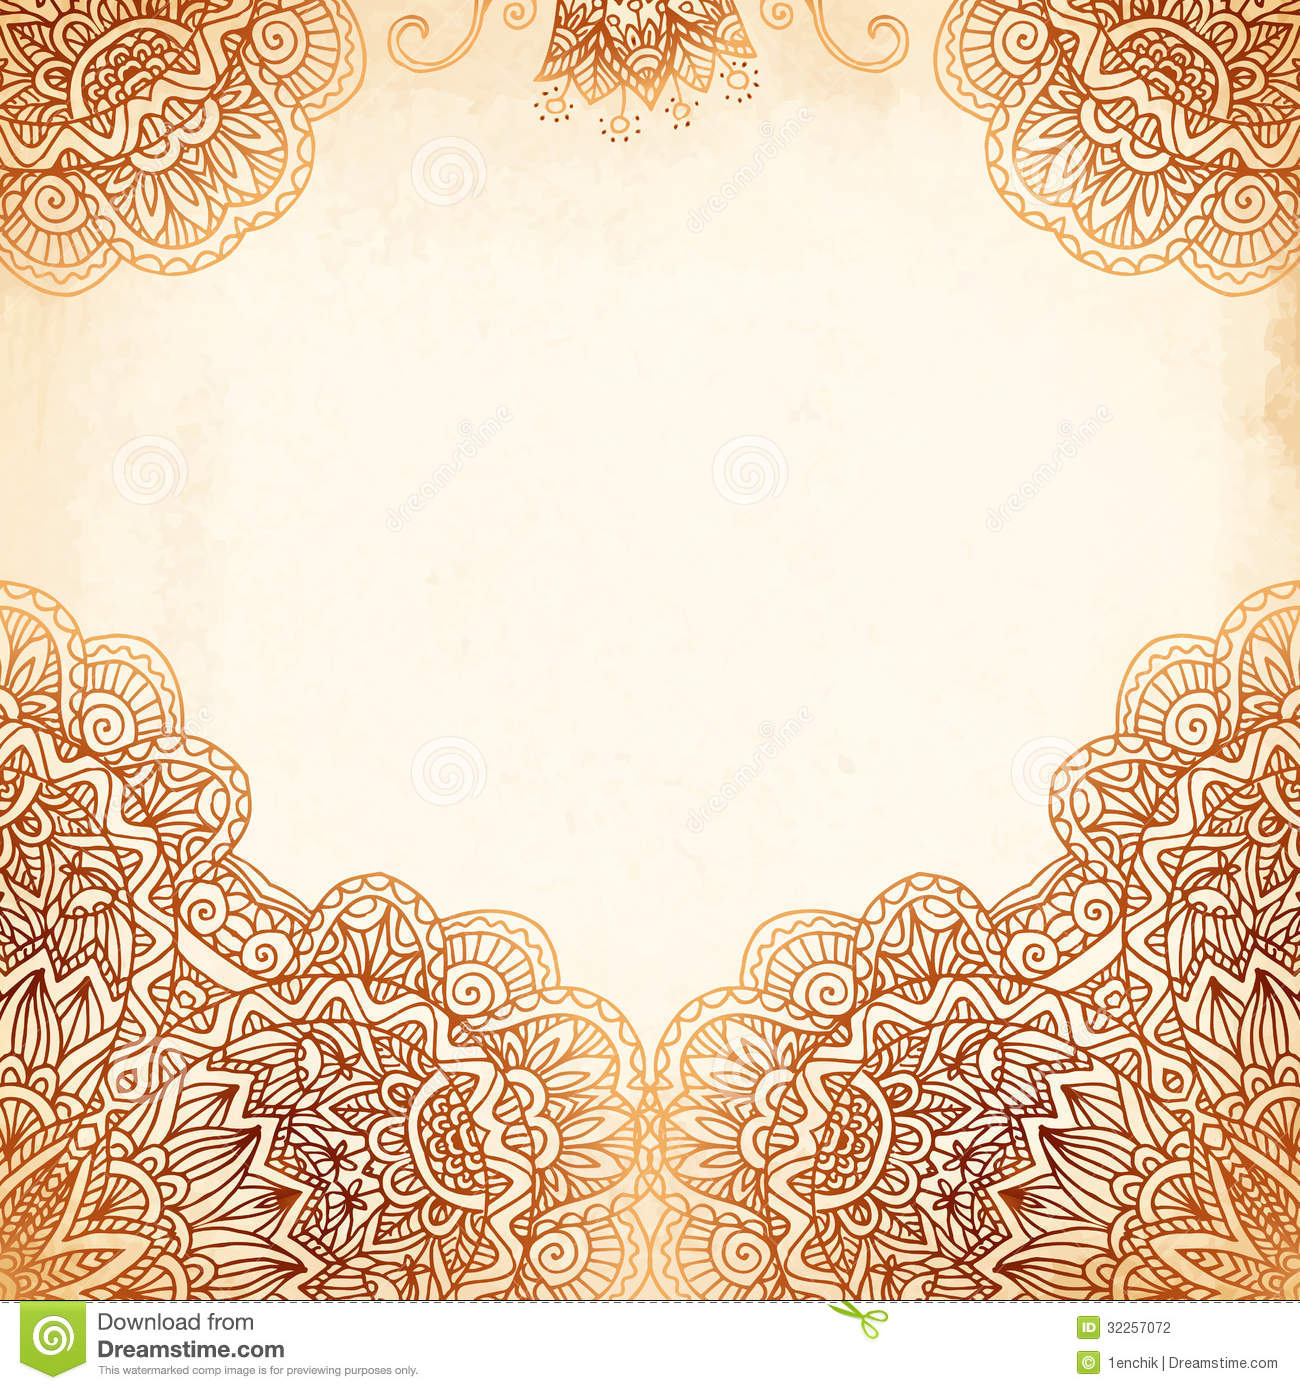 Ornate vintage vector background in mehndi style stock illustration download comp stopboris Images